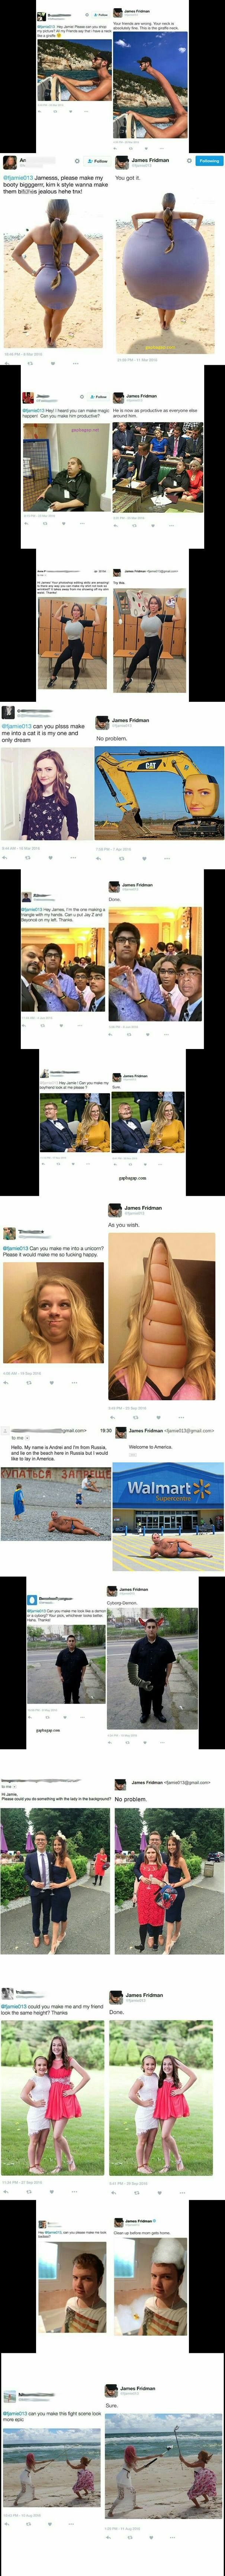 Top 15 Funny Pictures By James Fridman